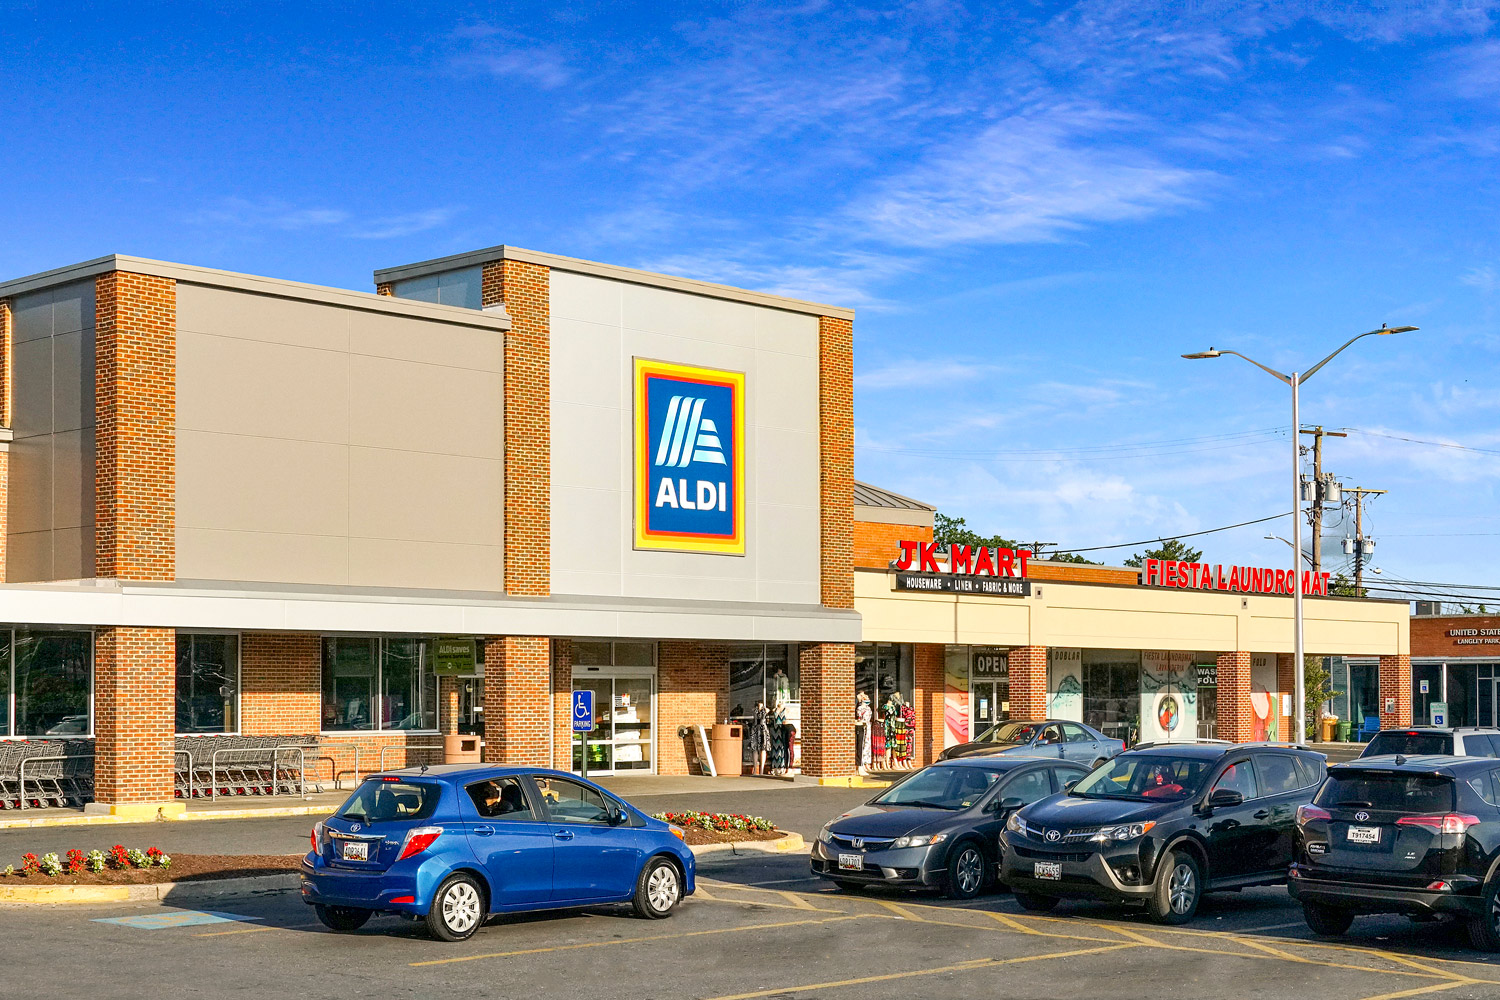 Walking distance to Aldi grocery store in Langley Park MD